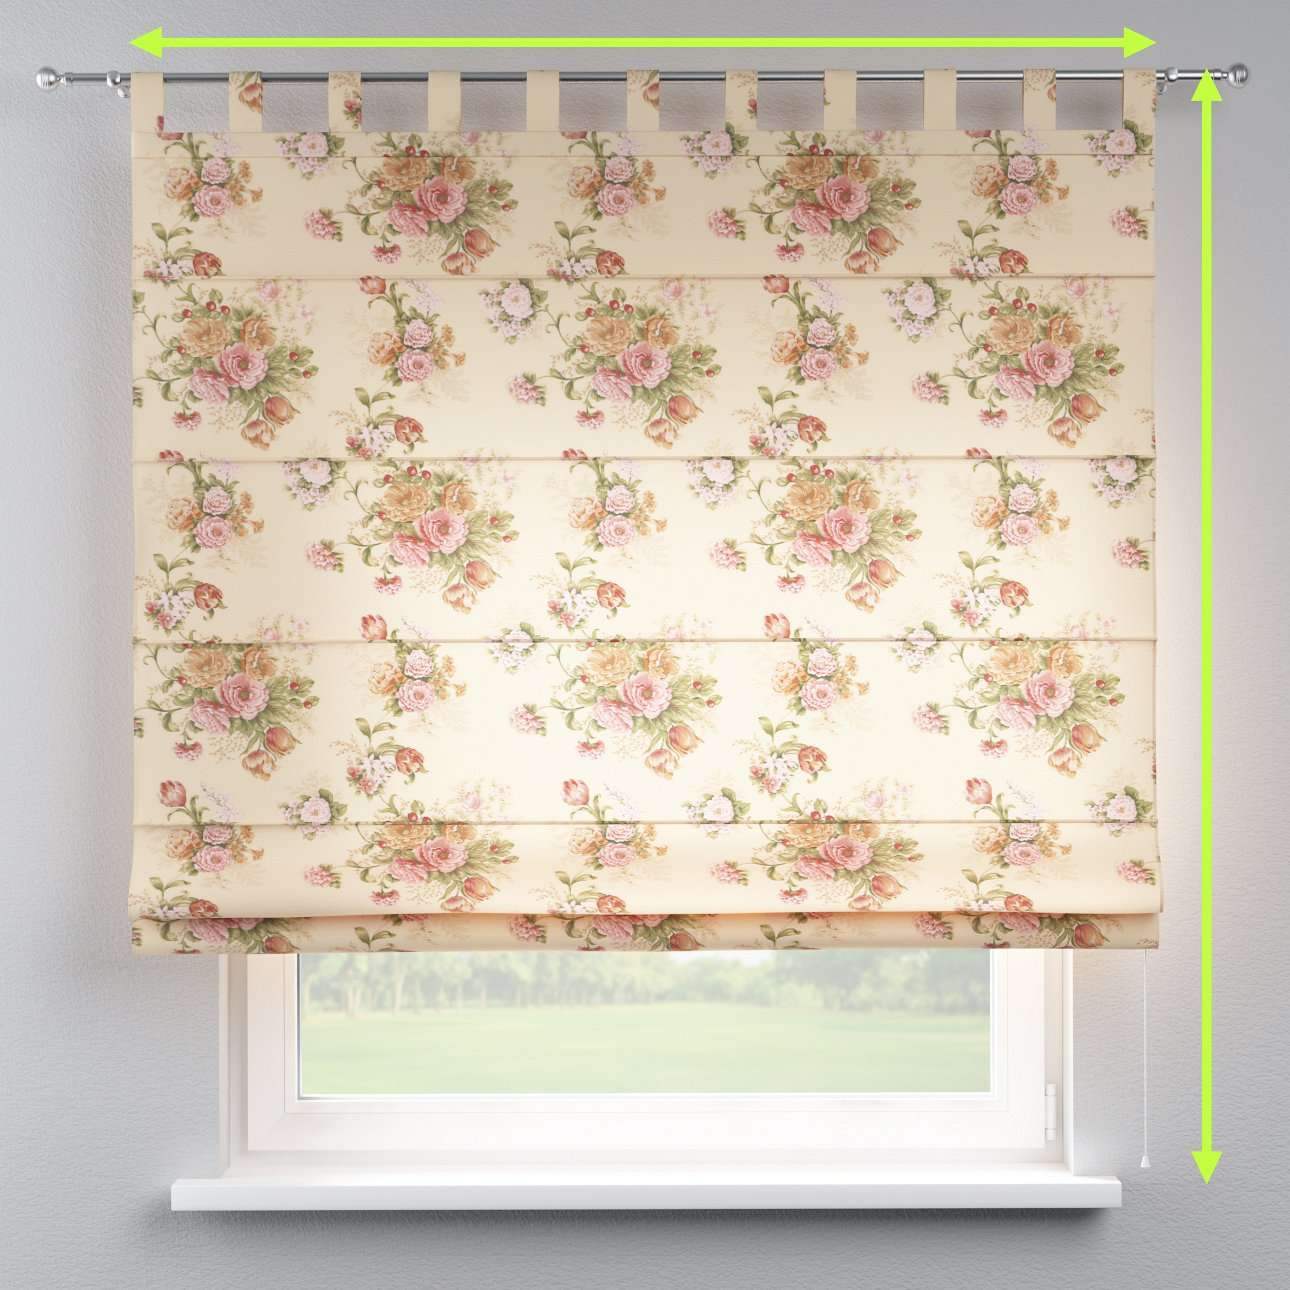 Verona tab top roman blind in collection Flowers, fabric: 302-01